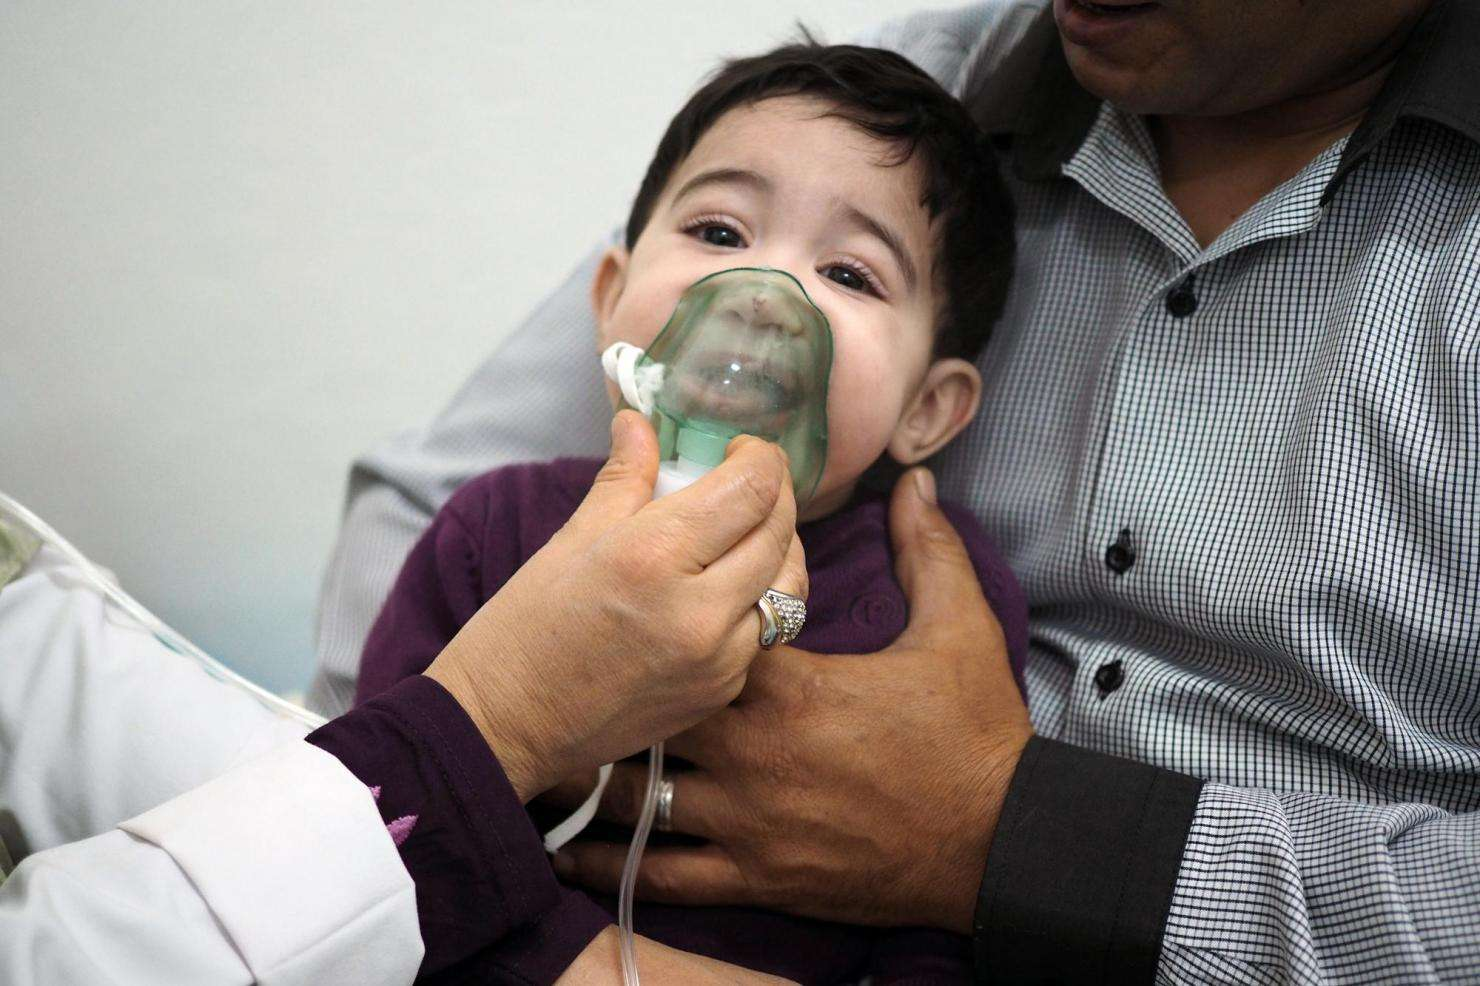 Libya: Health Systems Are Themselves in Critical Condition